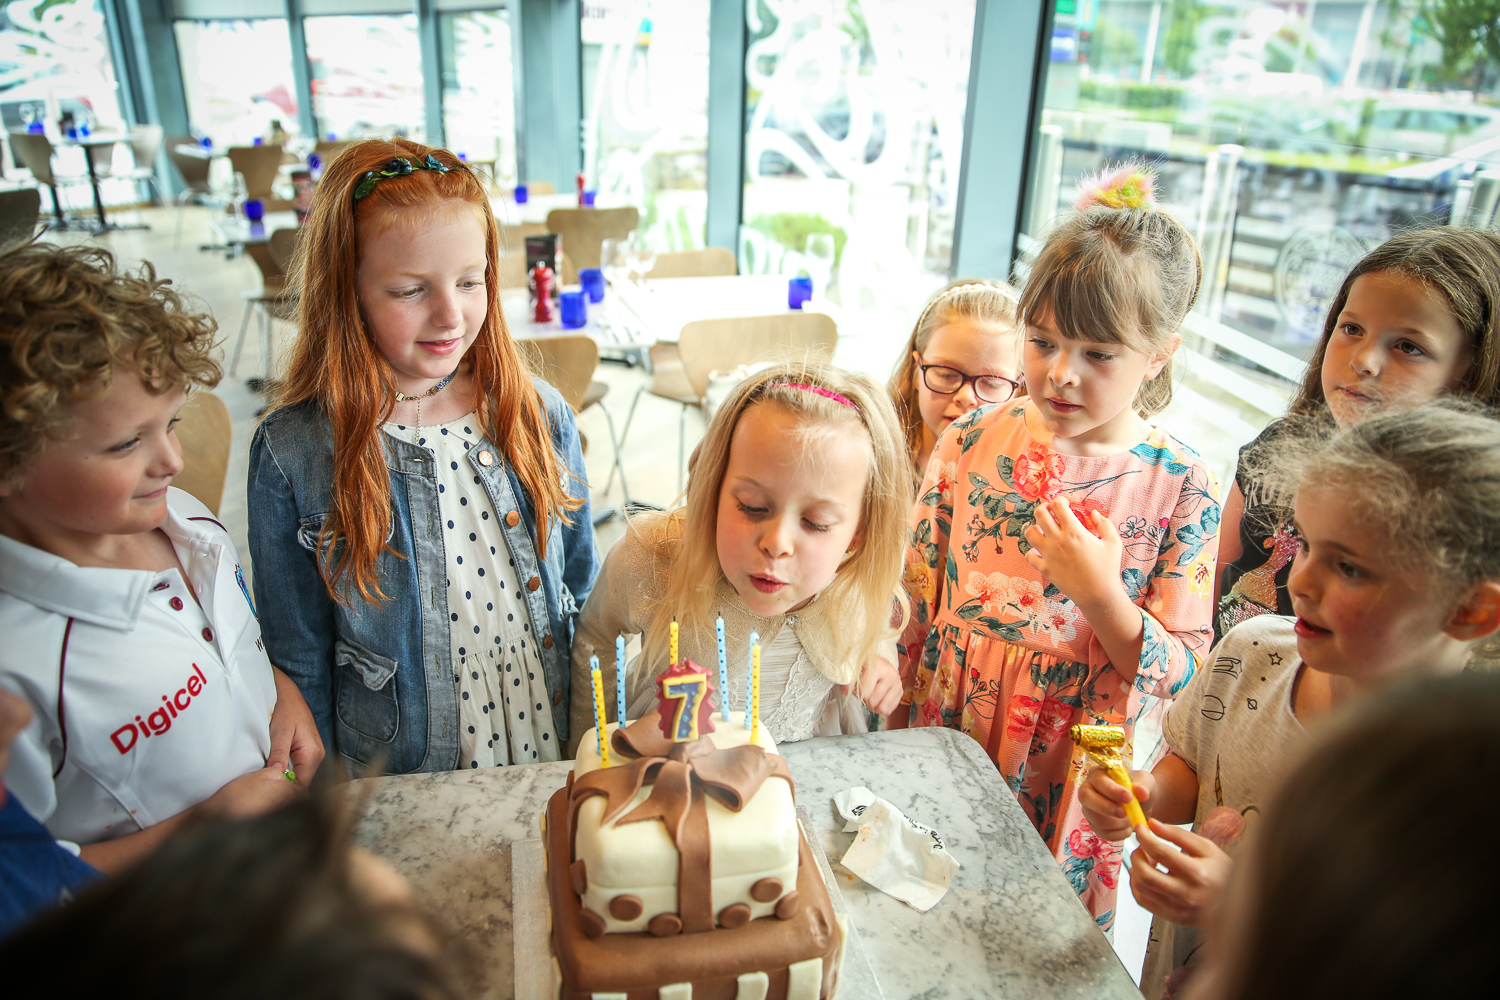 Pizza-Express-Kids-indoor-Birthday-Party-family-photographer-South-Wales-Natalia-Smith-Photography-0017.jpg